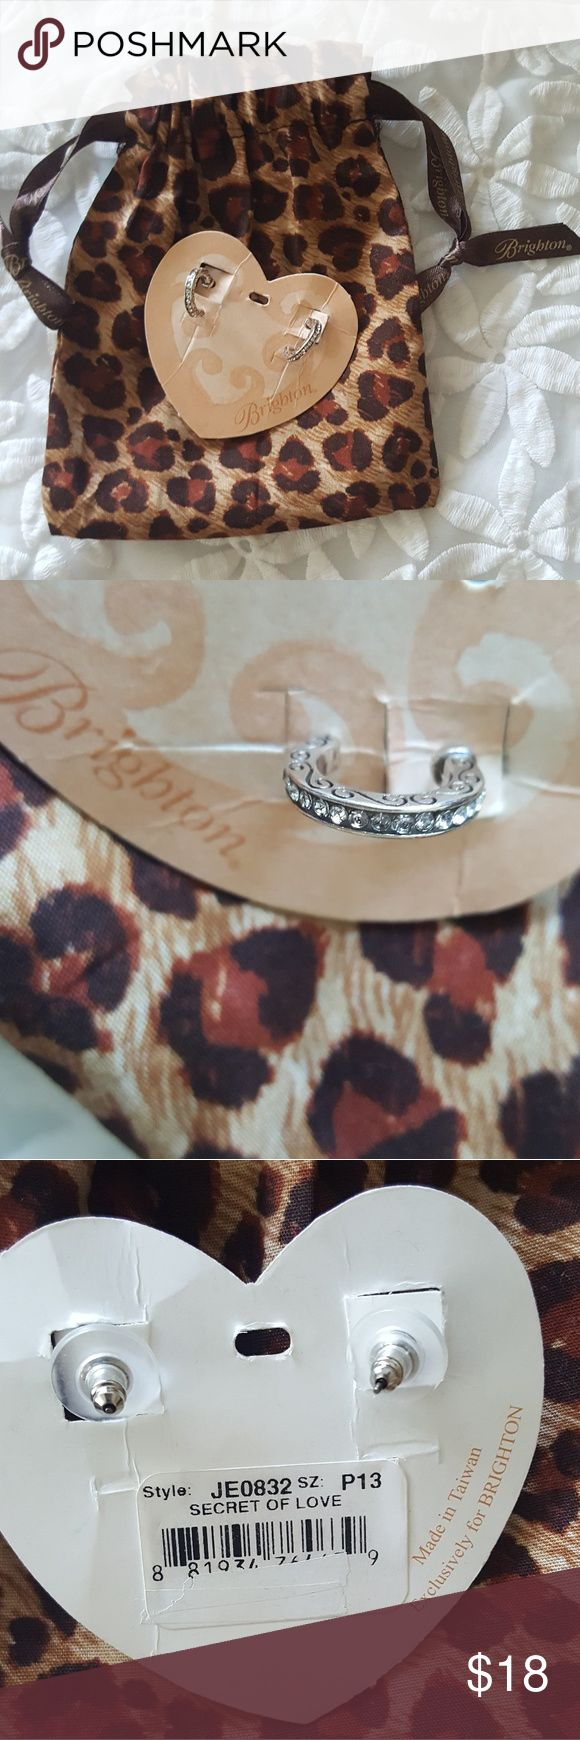 New ~ Brighton Mini Hoop Earrings These Are Very Pretty And Charming  Earrings By Brighton